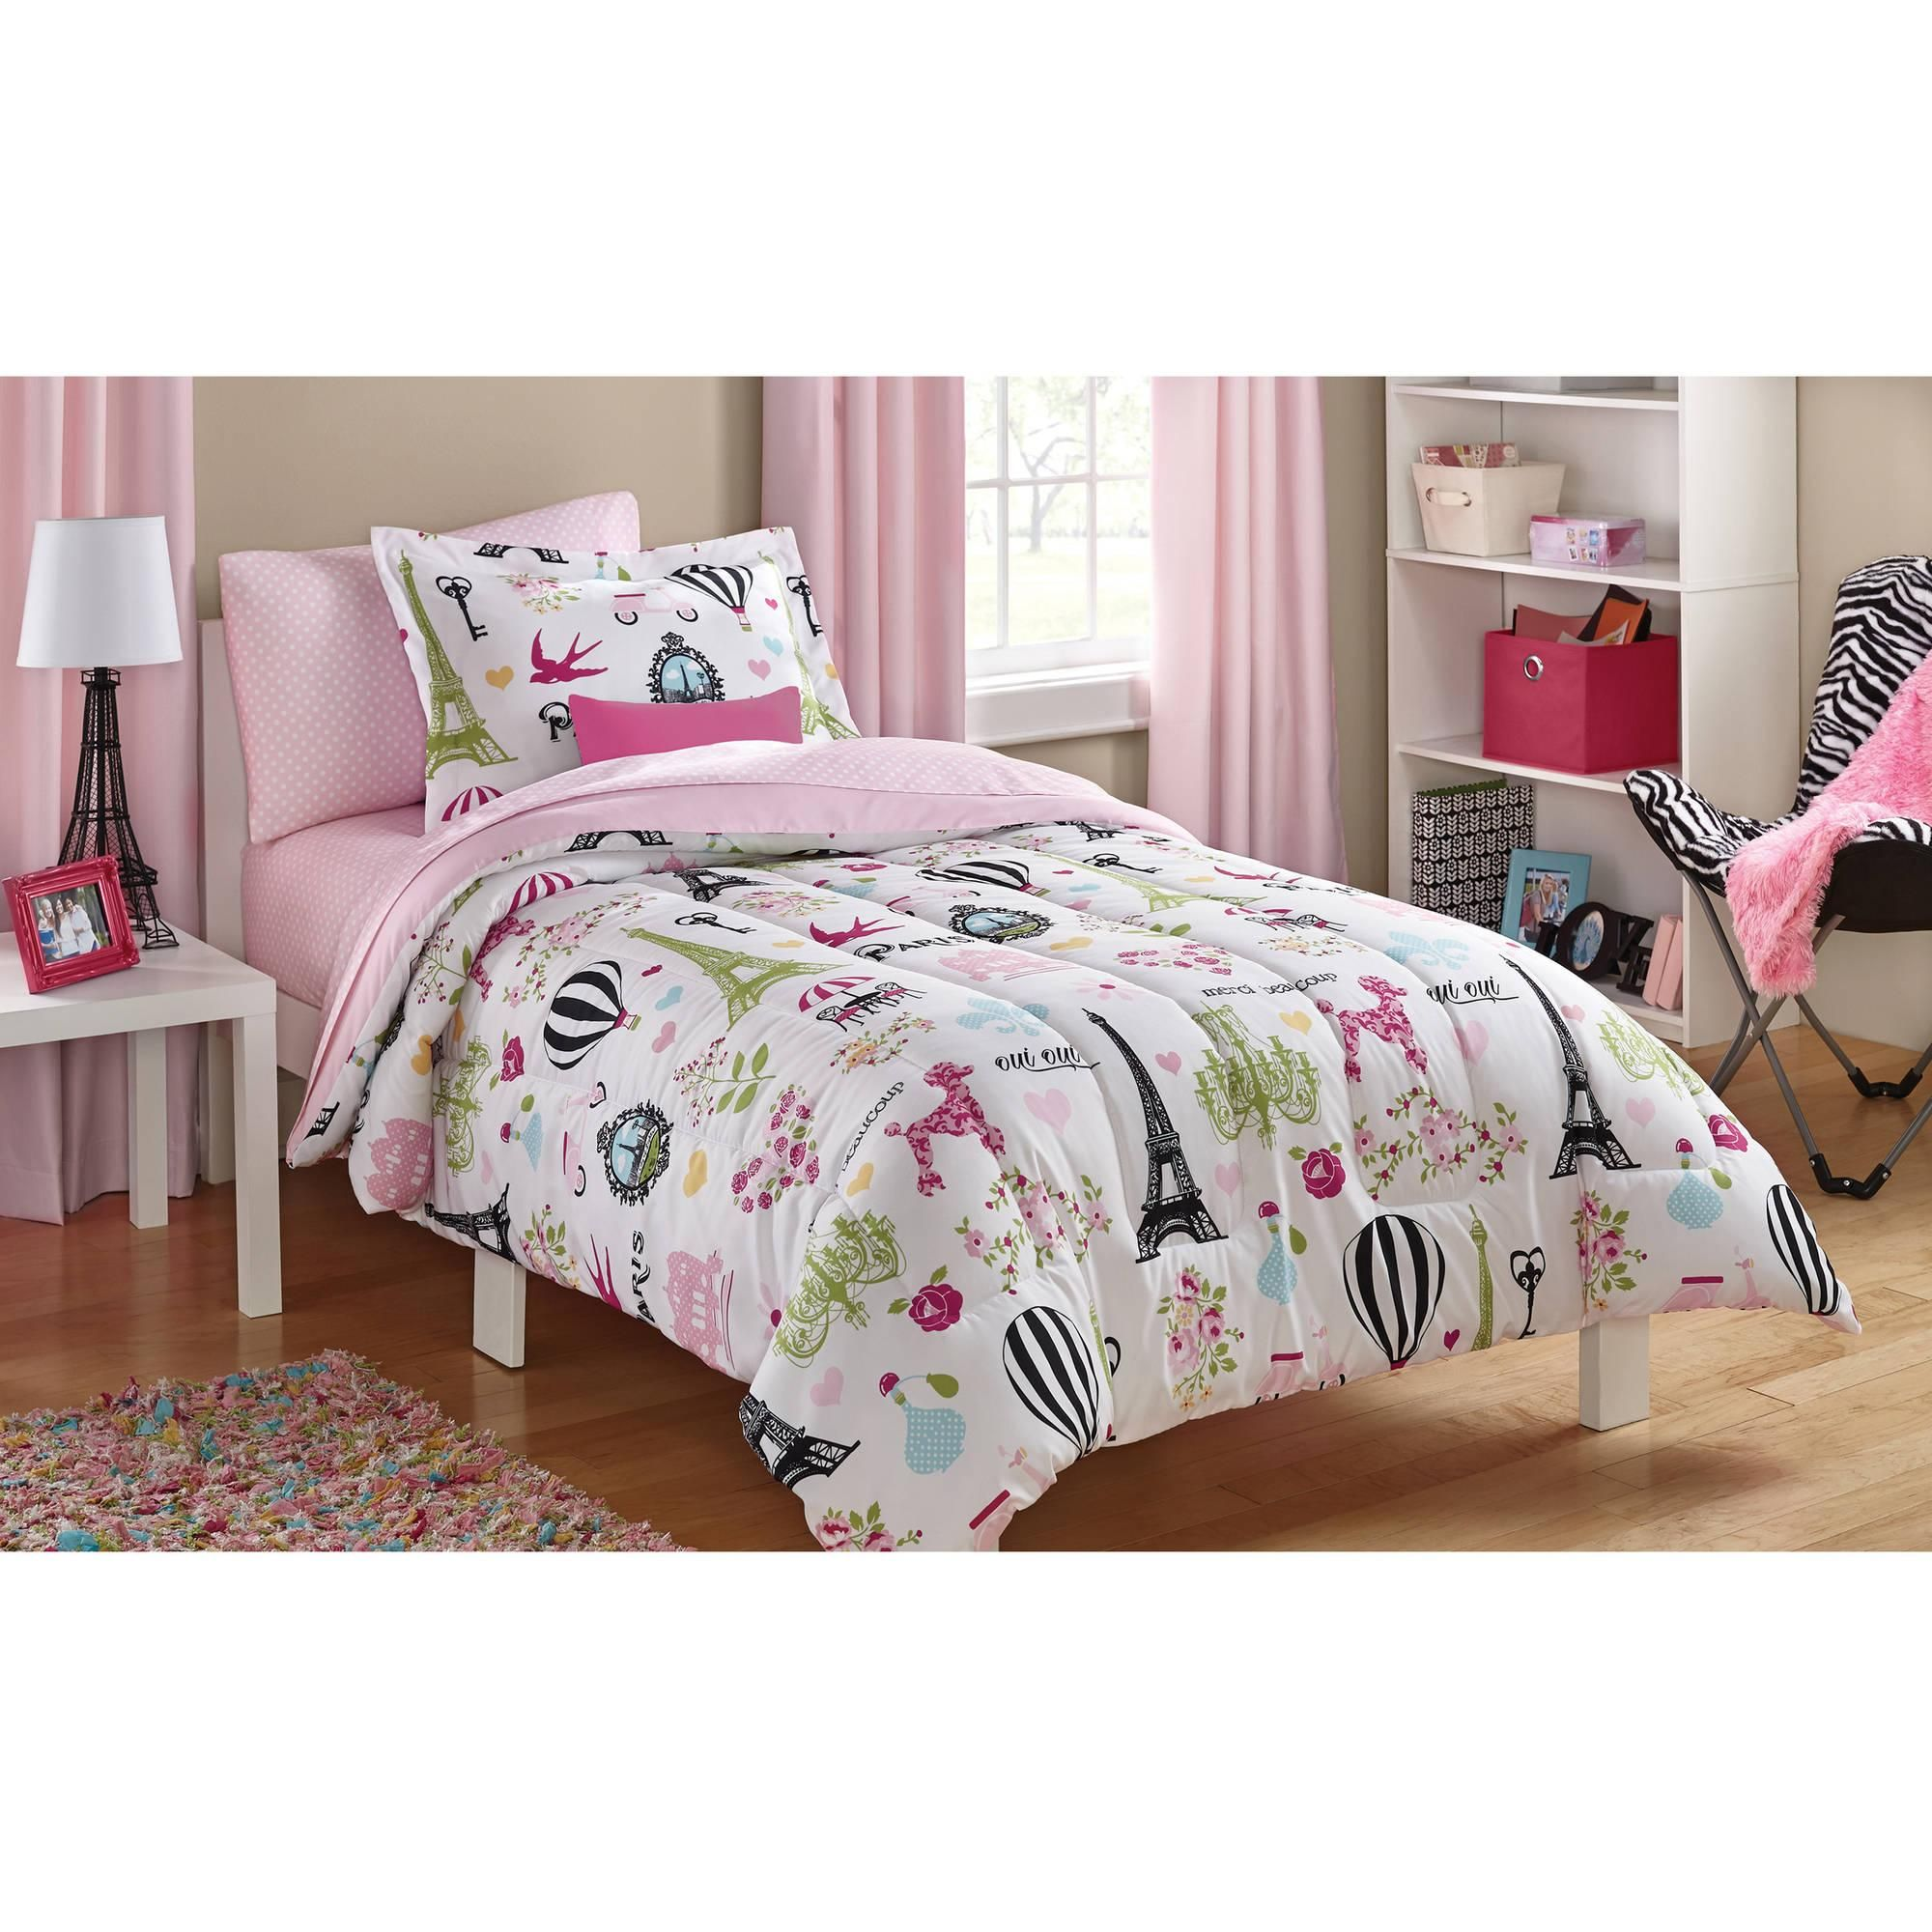 Mainstays Kids Paris Bed In A Bag Bedding Set Walmart Com Paris Bedding Kids Bedding Sets Paris Comforter